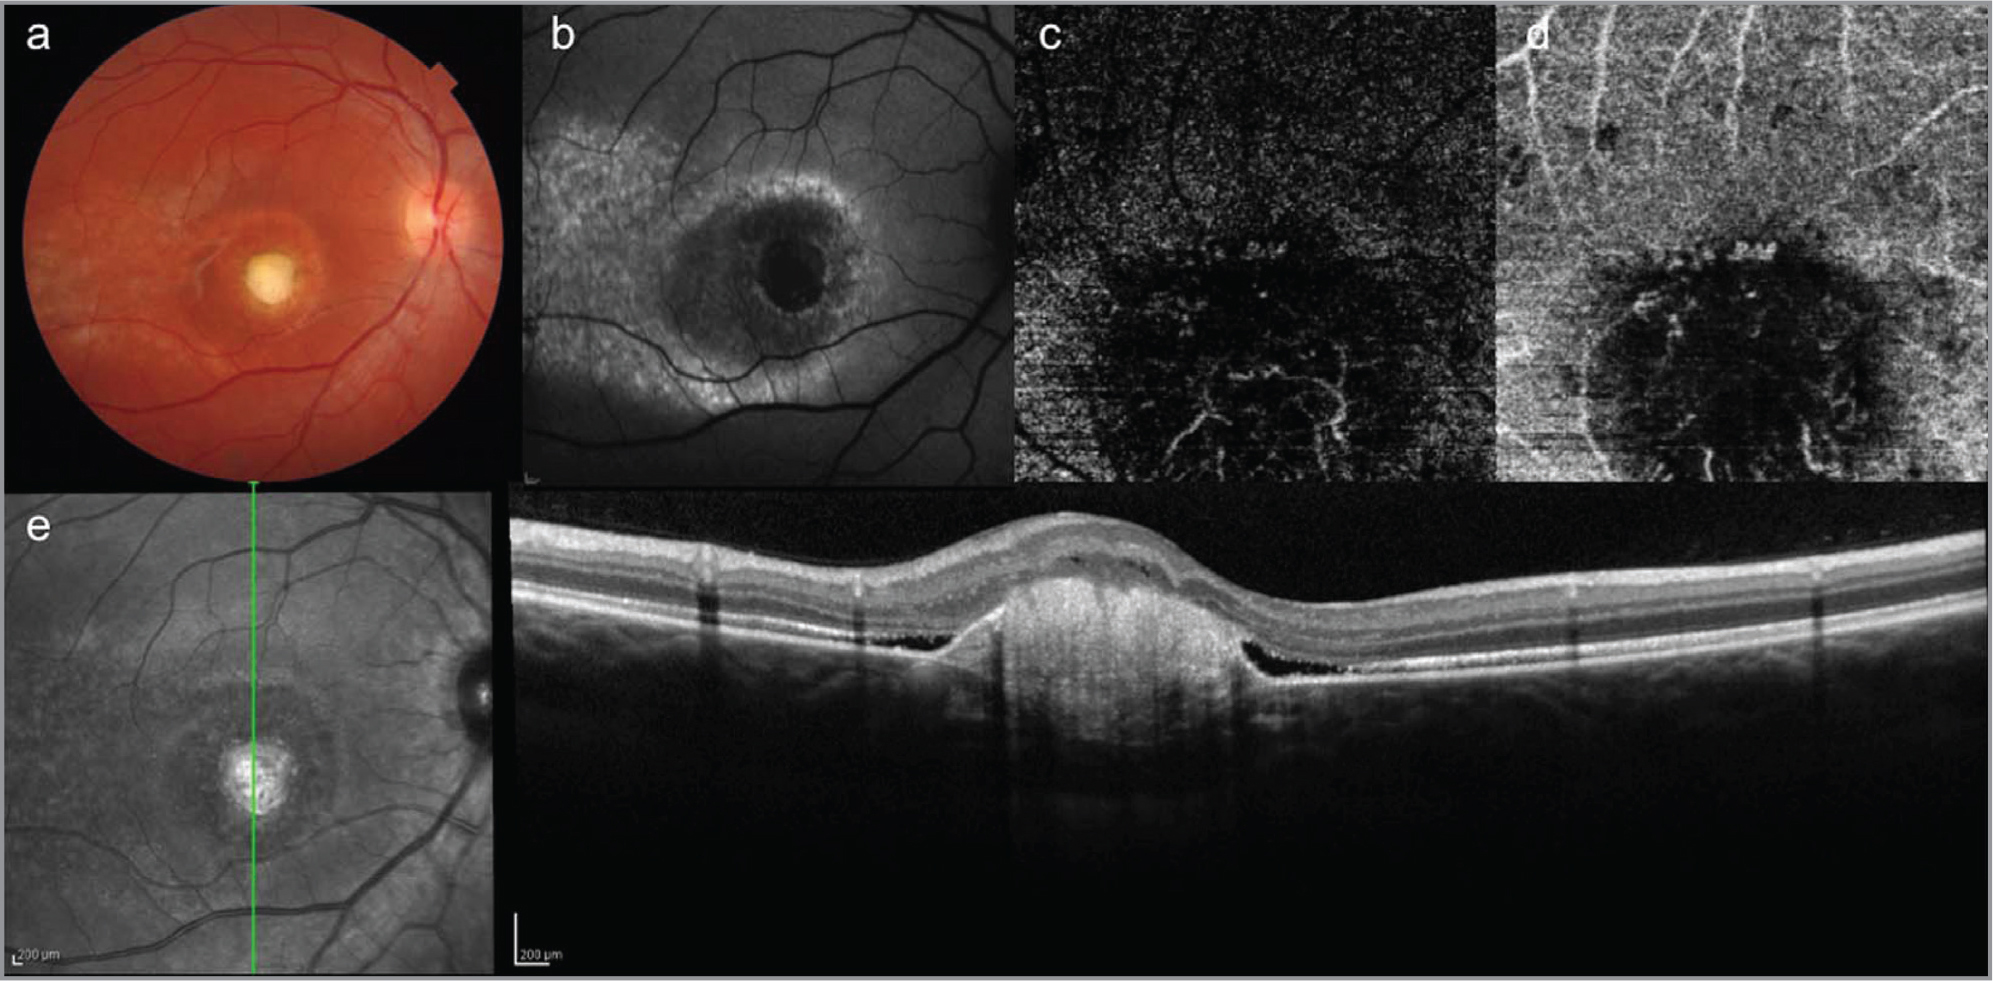 Multimodal imaging of autosomal recessive bestrophinopathy of the right eye after two anti-vascular endothelial growth factor injections. (a) Color fundus photograph shows presence of fibrotic macular scar tissue. (b) Fundus autofluorescence shows decreased autofluorescence in correspondence with the scar tissue. (c, d) Optical coherence tomography (OCT) angiography of the outer retina (c) and choriocapillaris (d) shows decreased vascular flow within the neovasculat network. (e) Spectral-domain OCT shows consolidation of the subretinal hyperreflective material.